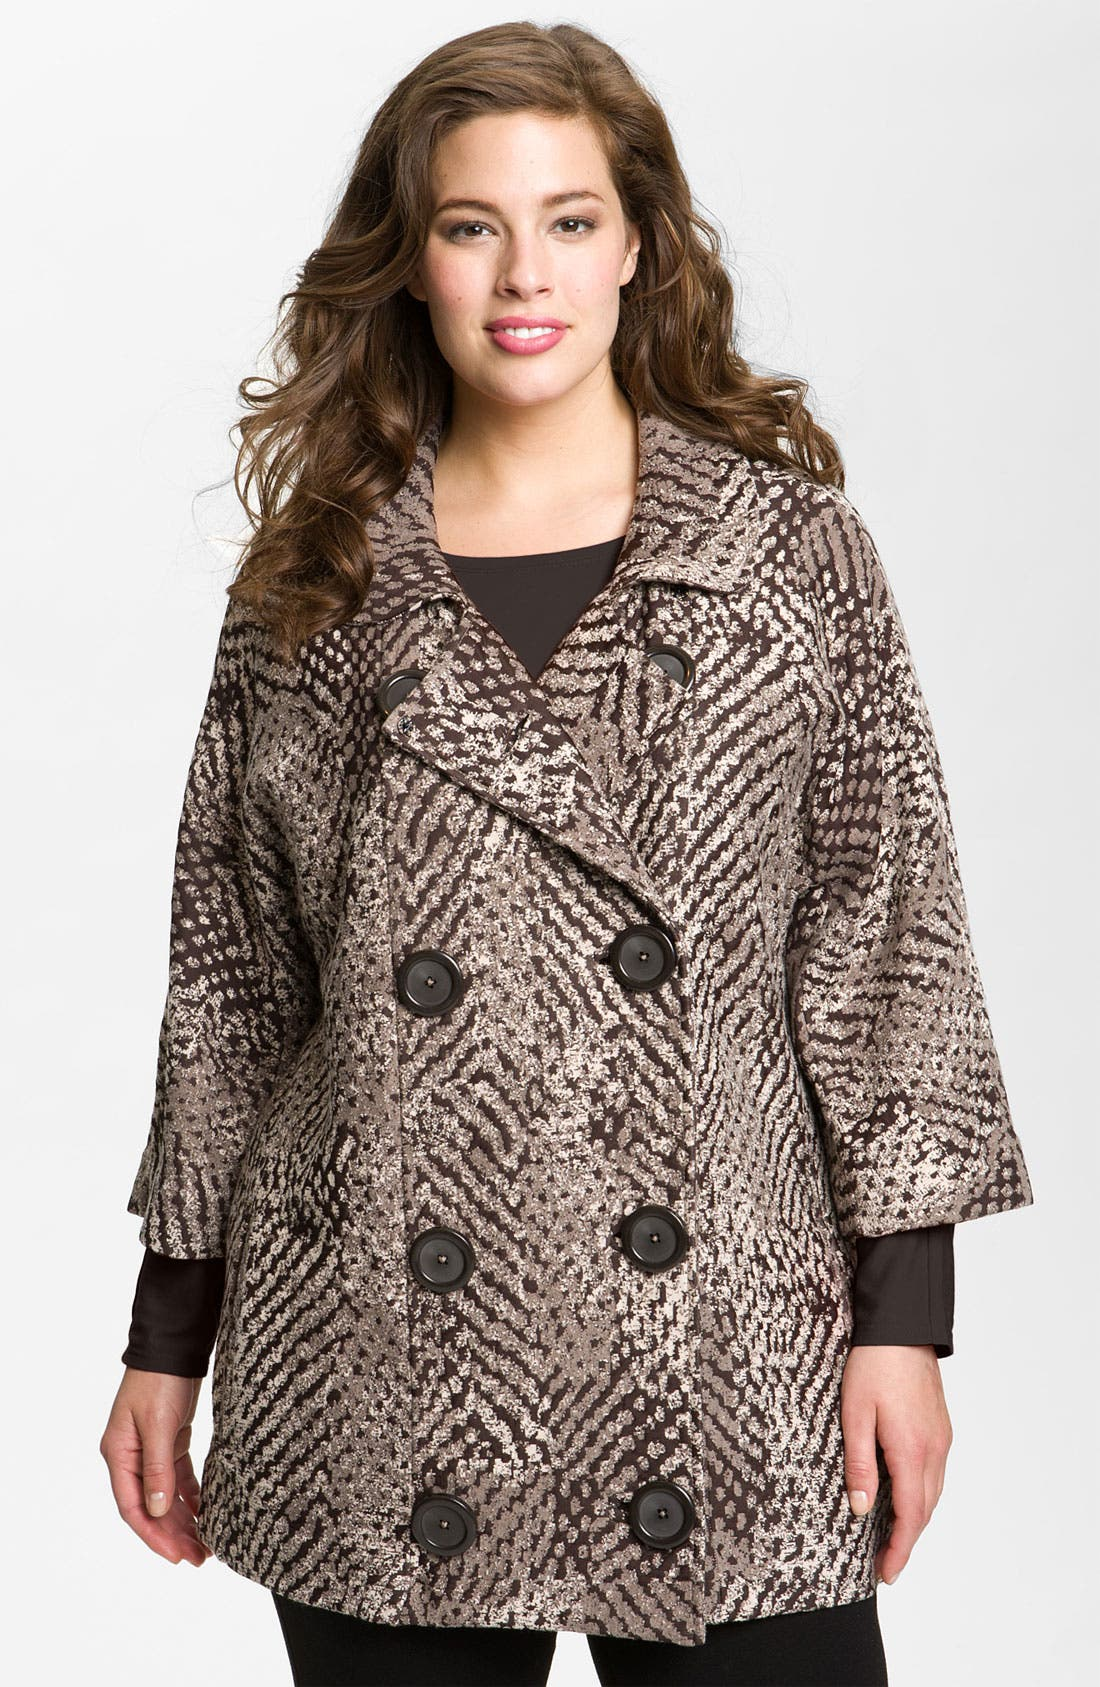 Alternate Image 1 Selected - Nic + Zoe 'Textured Dots' Knit Jacket (Plus)